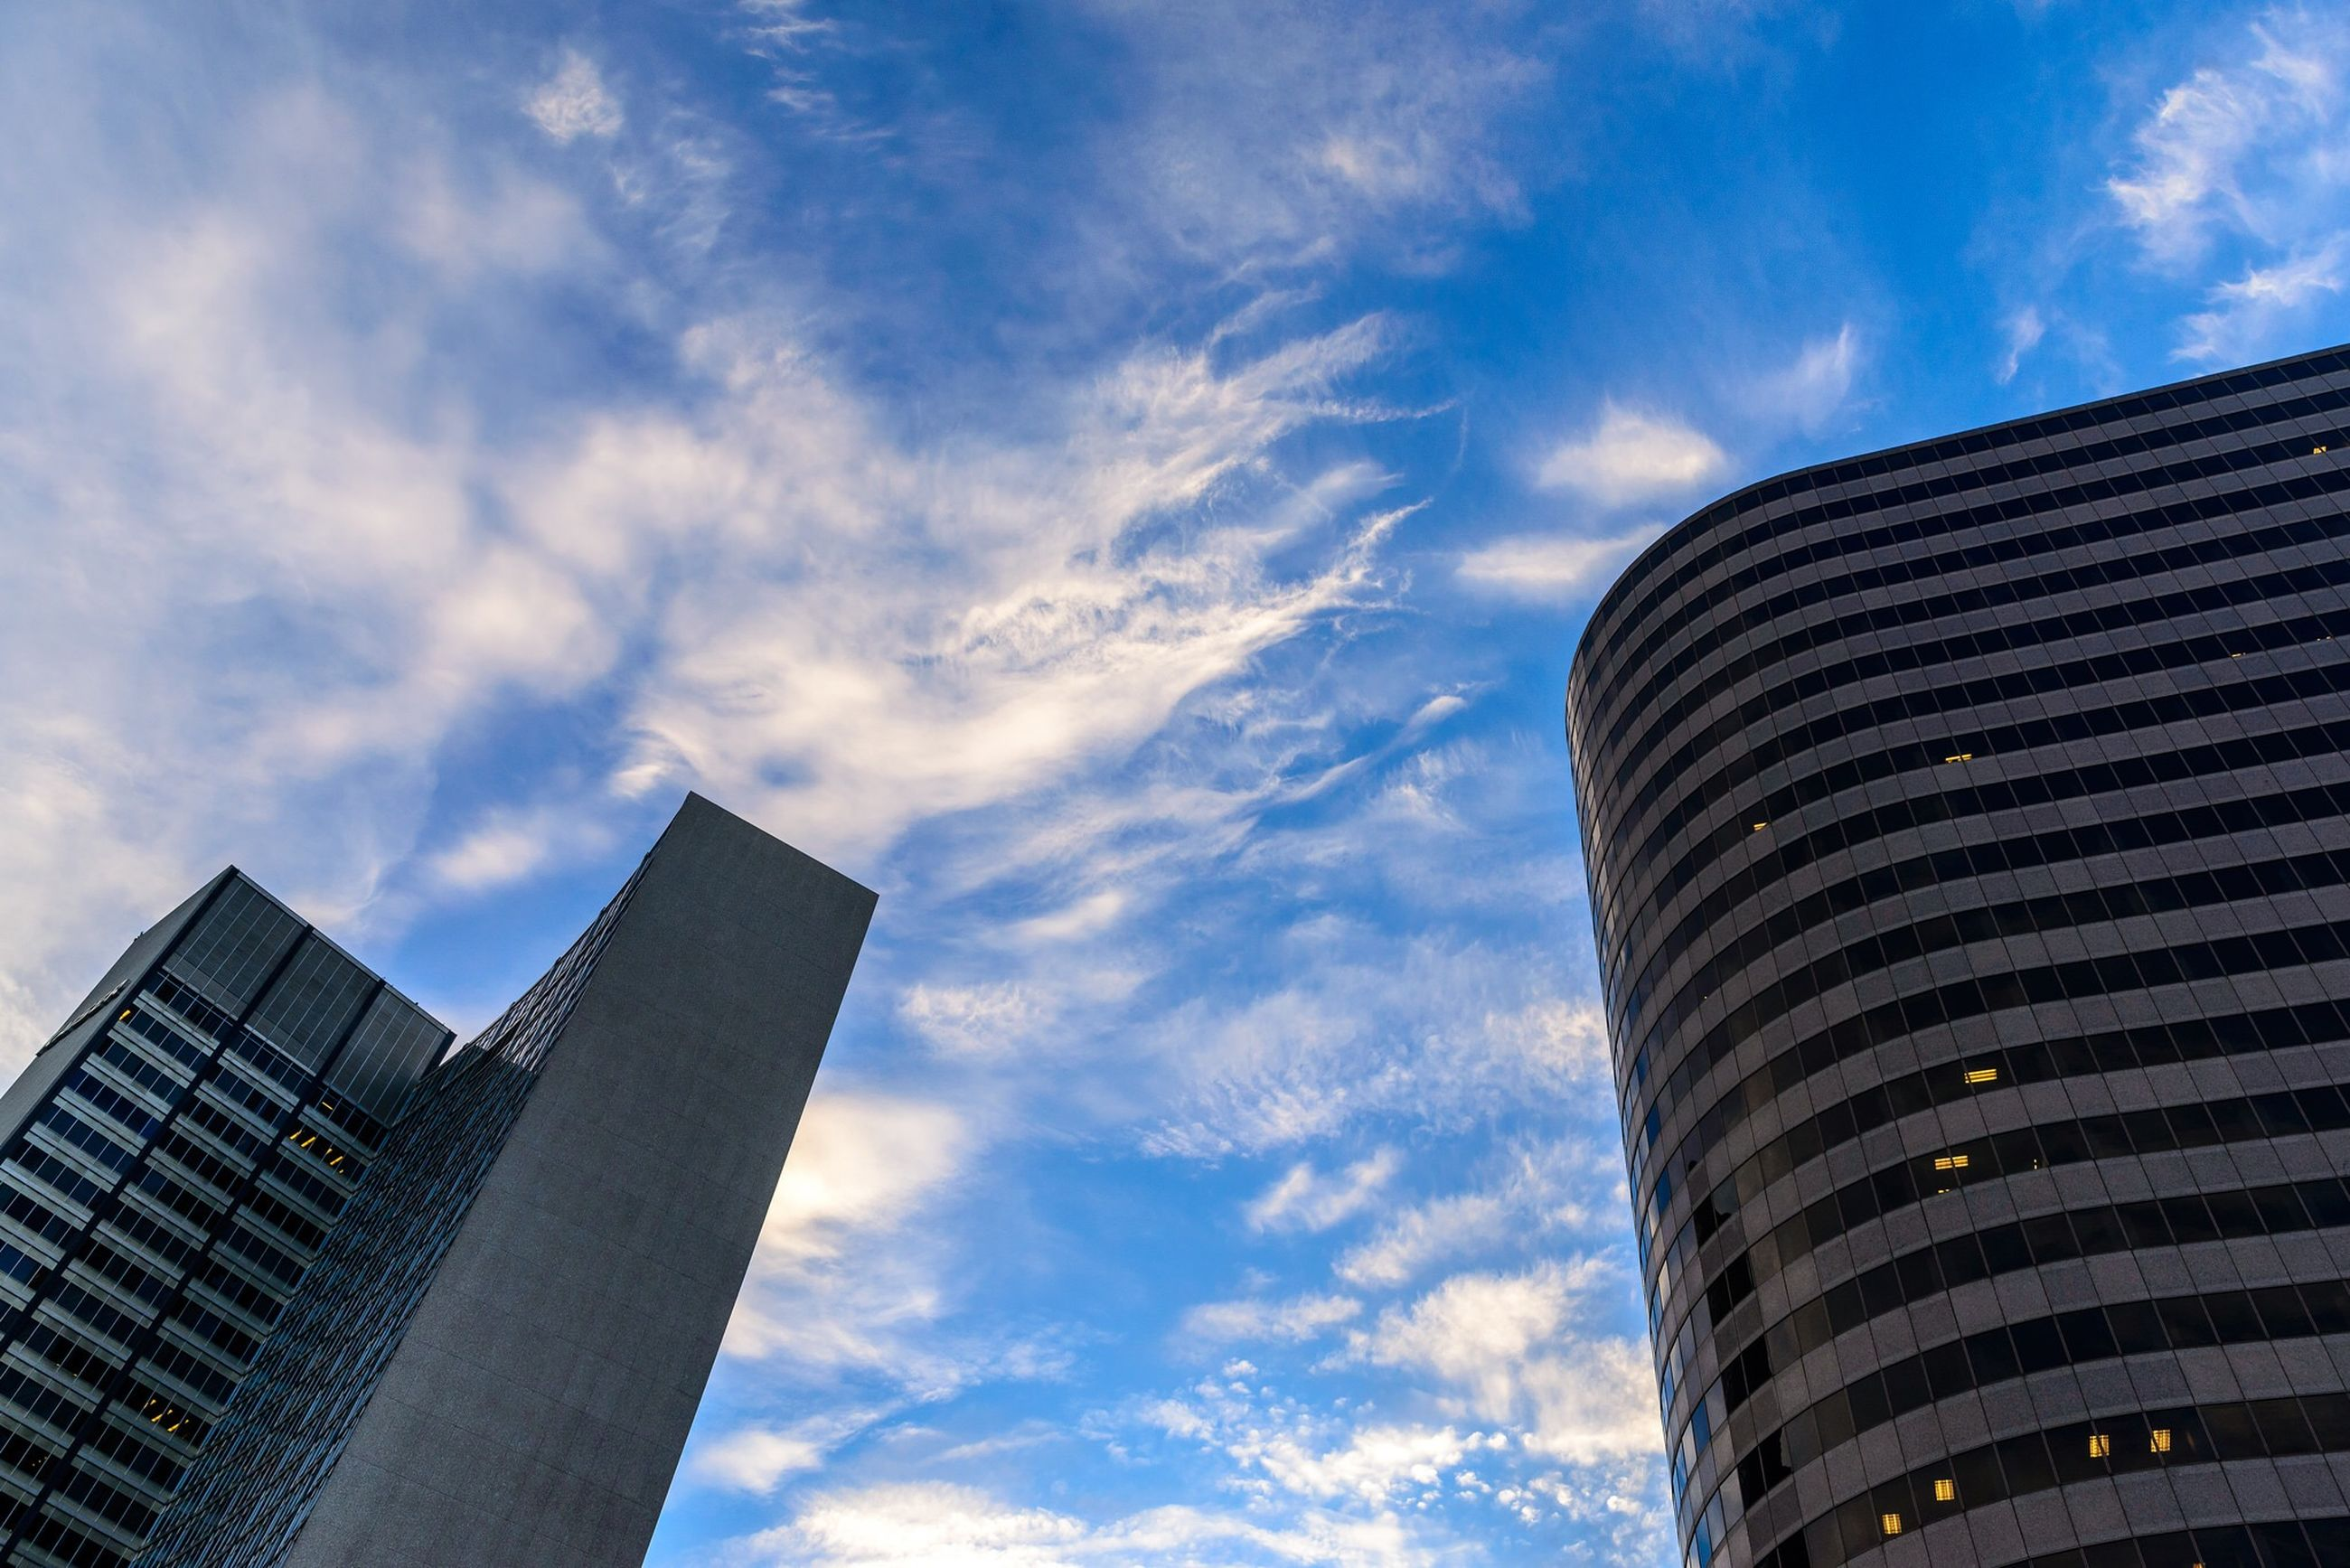 building exterior, architecture, built structure, low angle view, skyscraper, city, sky, tall - high, modern, office building, tower, cloud - sky, building, cloud, cloudy, tall, day, outdoors, city life, no people